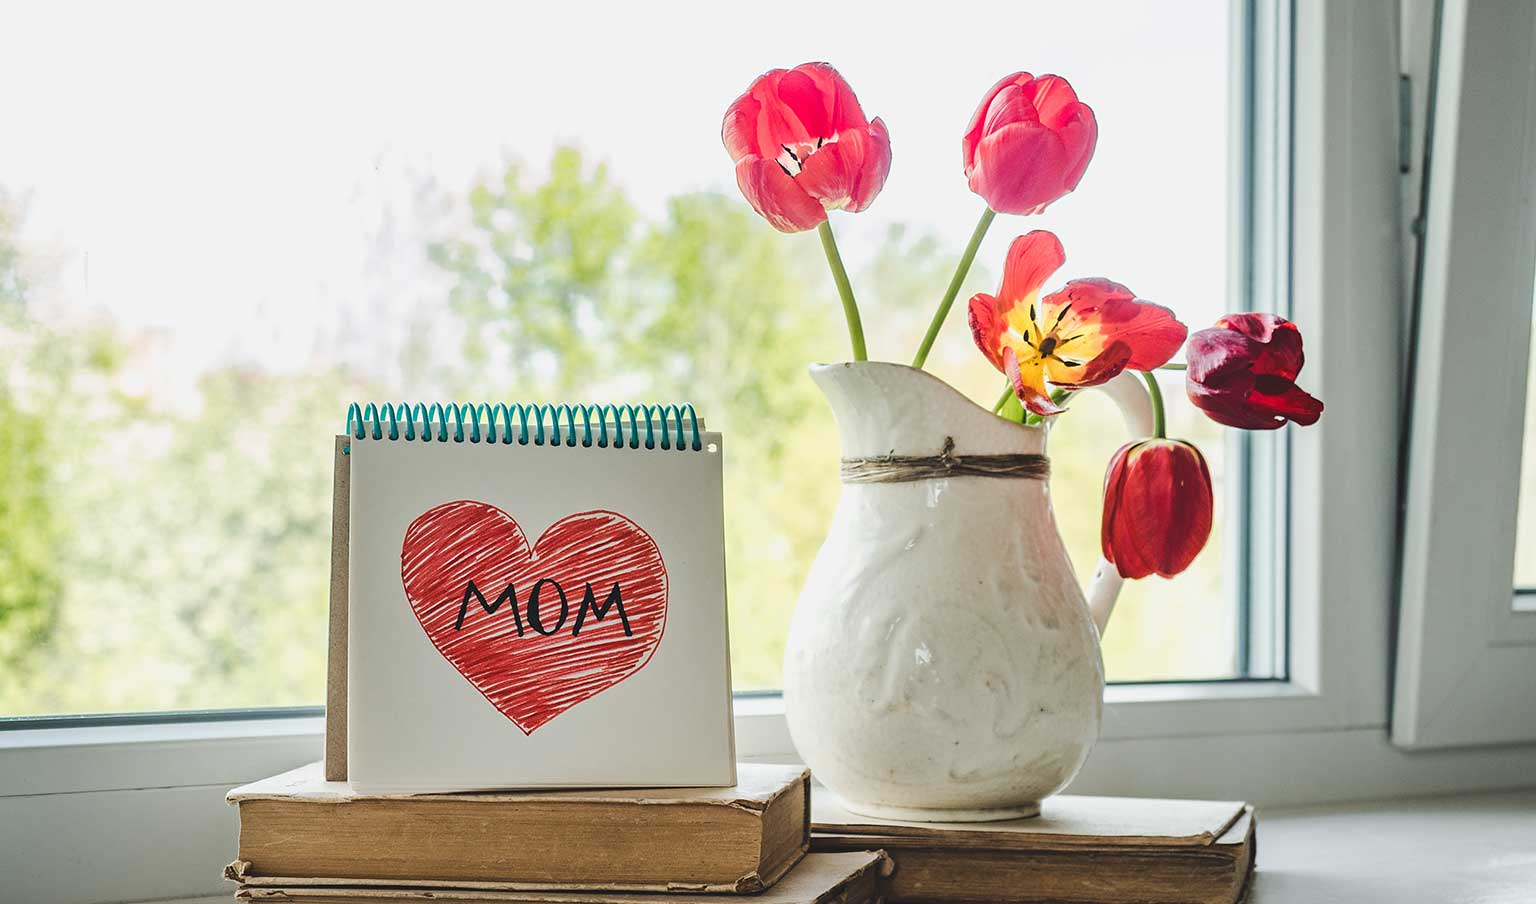 Places to celebrate Mother's Day 2021 in Vancouver, WA -vignette with a small, spiral-bound notebook standing on top of some old books with a red heart with Mom written inside of it on the page. Next to the notebook is a white ceramic vase containing a few red and yellow flowers.